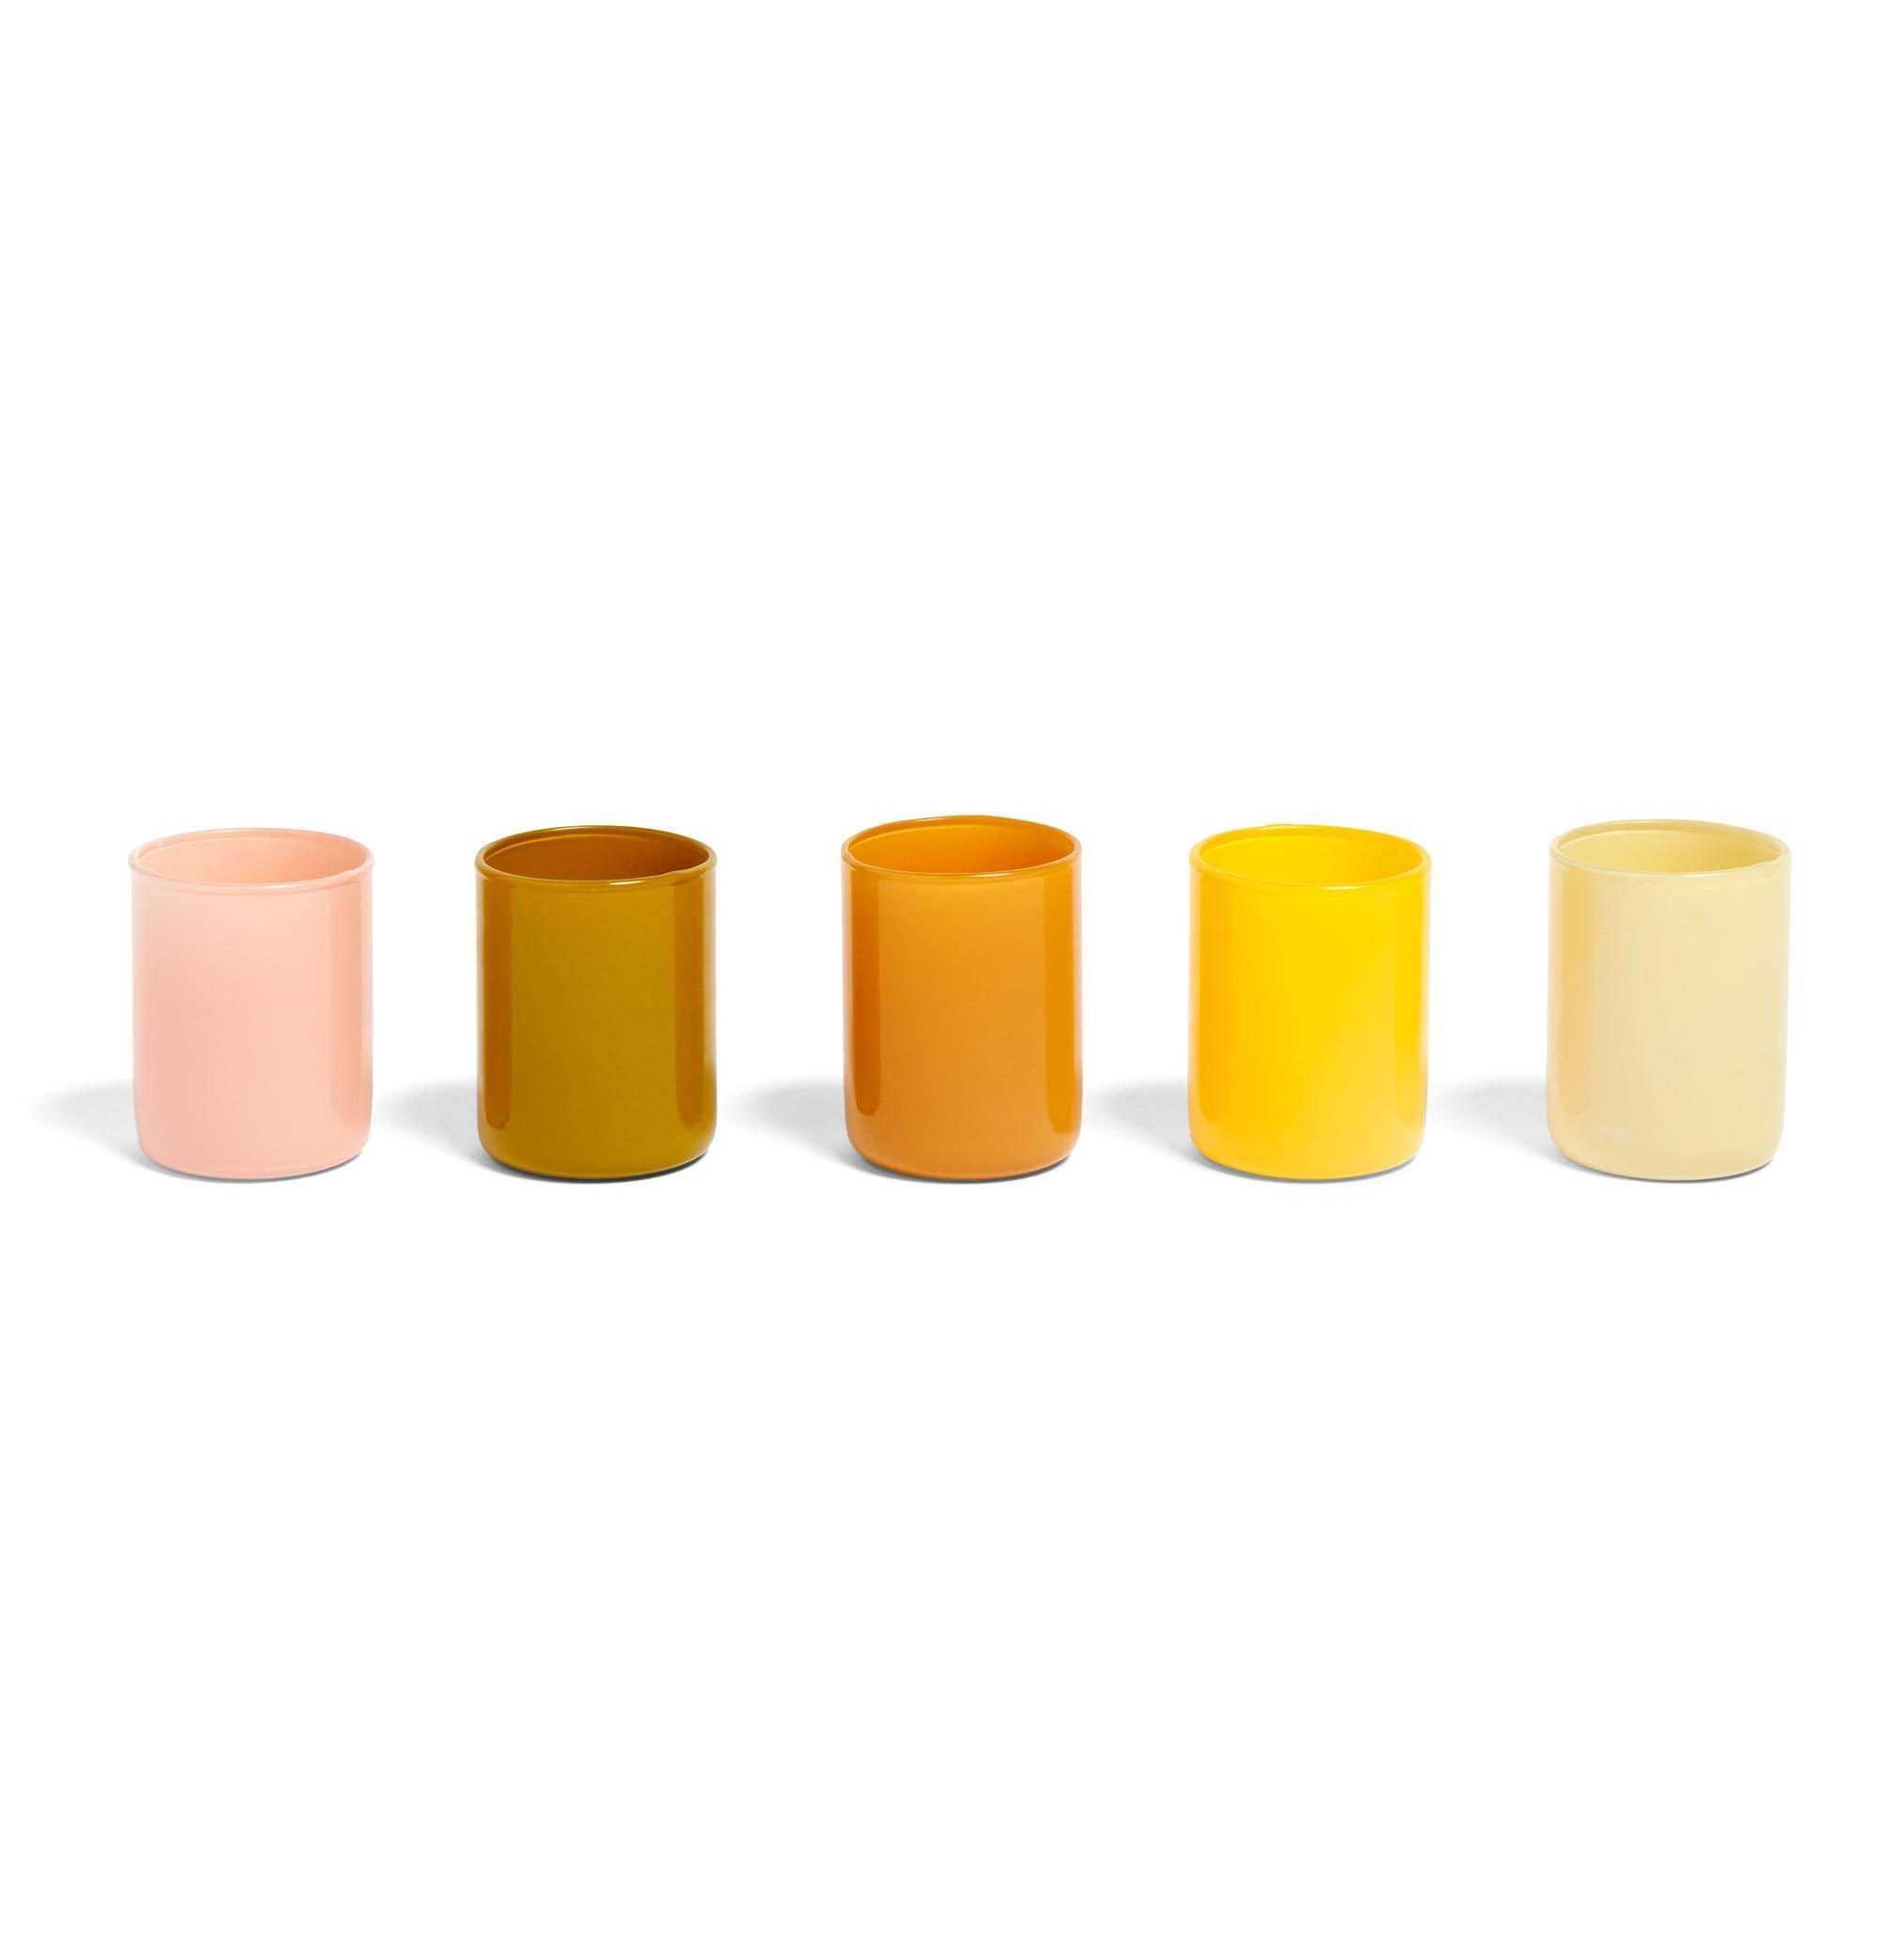 HAY Spot Votive – Set of 5 – Yellow